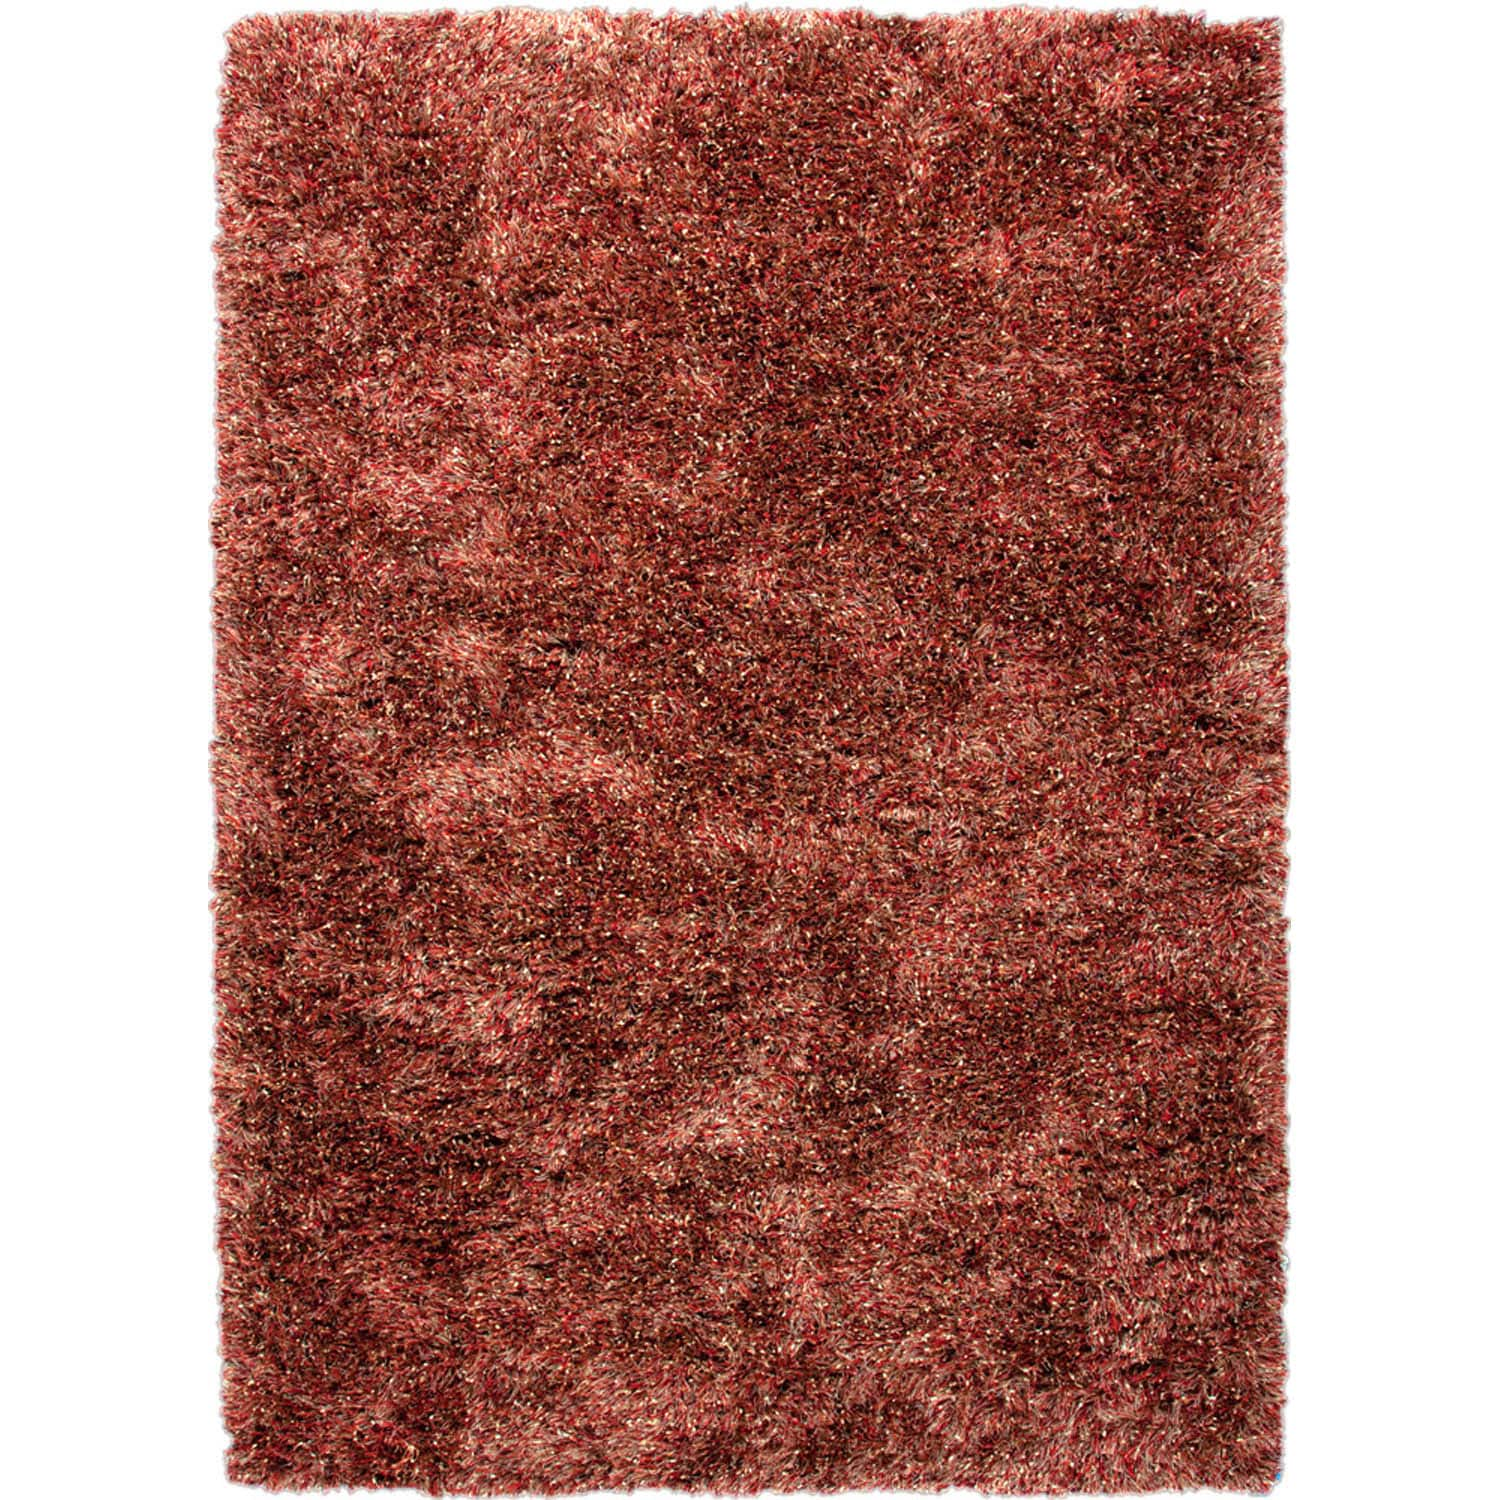 JRCPL Hand-woven Shags Abstract Pattern Multi Color Rug (5' x 8') at Sears.com